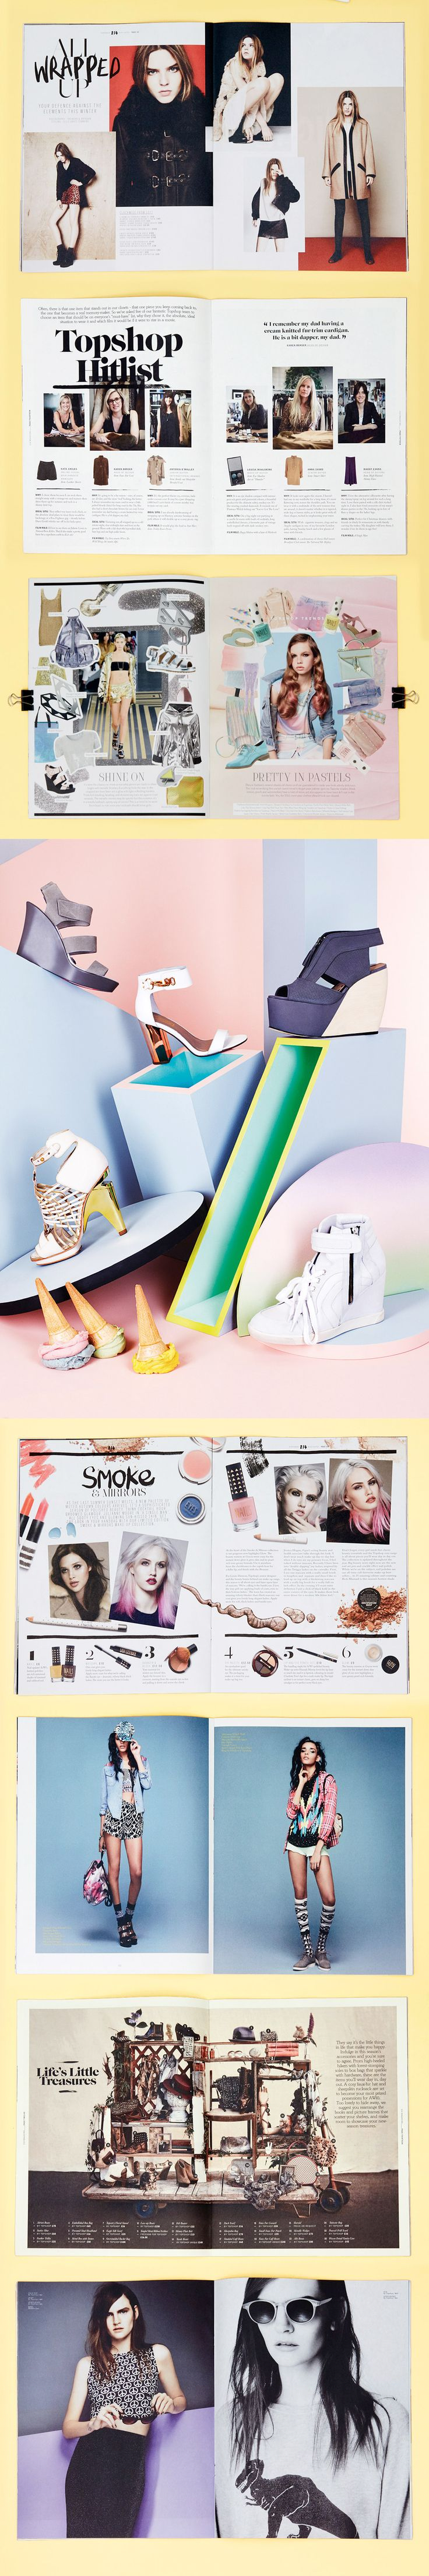 Promotion -Topshop Magazine will advertise the cheaper side of the collection to aim at a younger target audience.